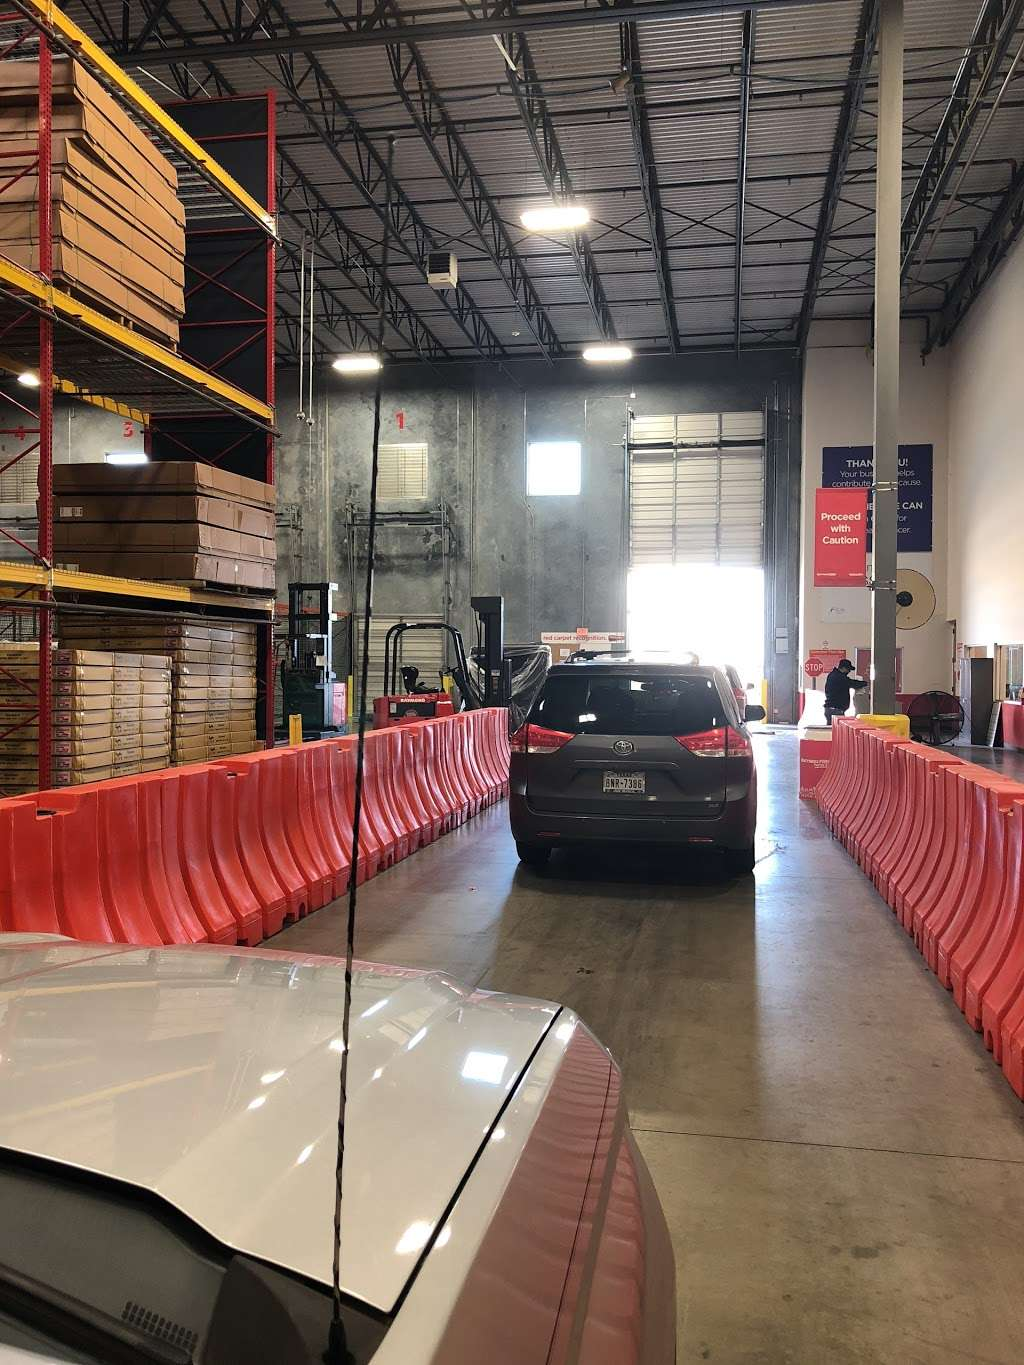 Mattress Firm Distribution Center - storage  | Photo 1 of 10 | Address: 15872 Diplomatic Plaza Dr, Houston, TX 77032, USA | Phone: (281) 929-7590